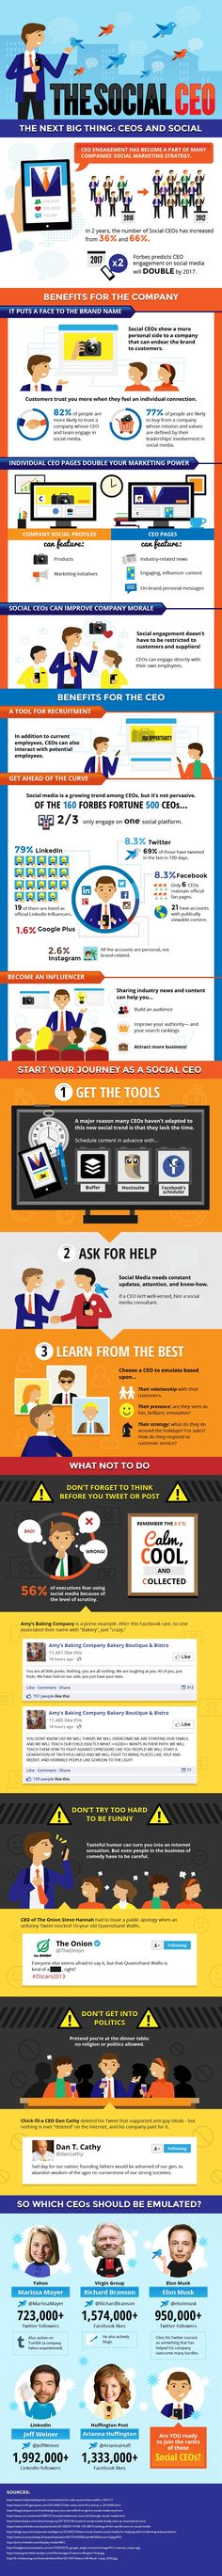 How to be a Social CEO [INFOGRAPHIC]